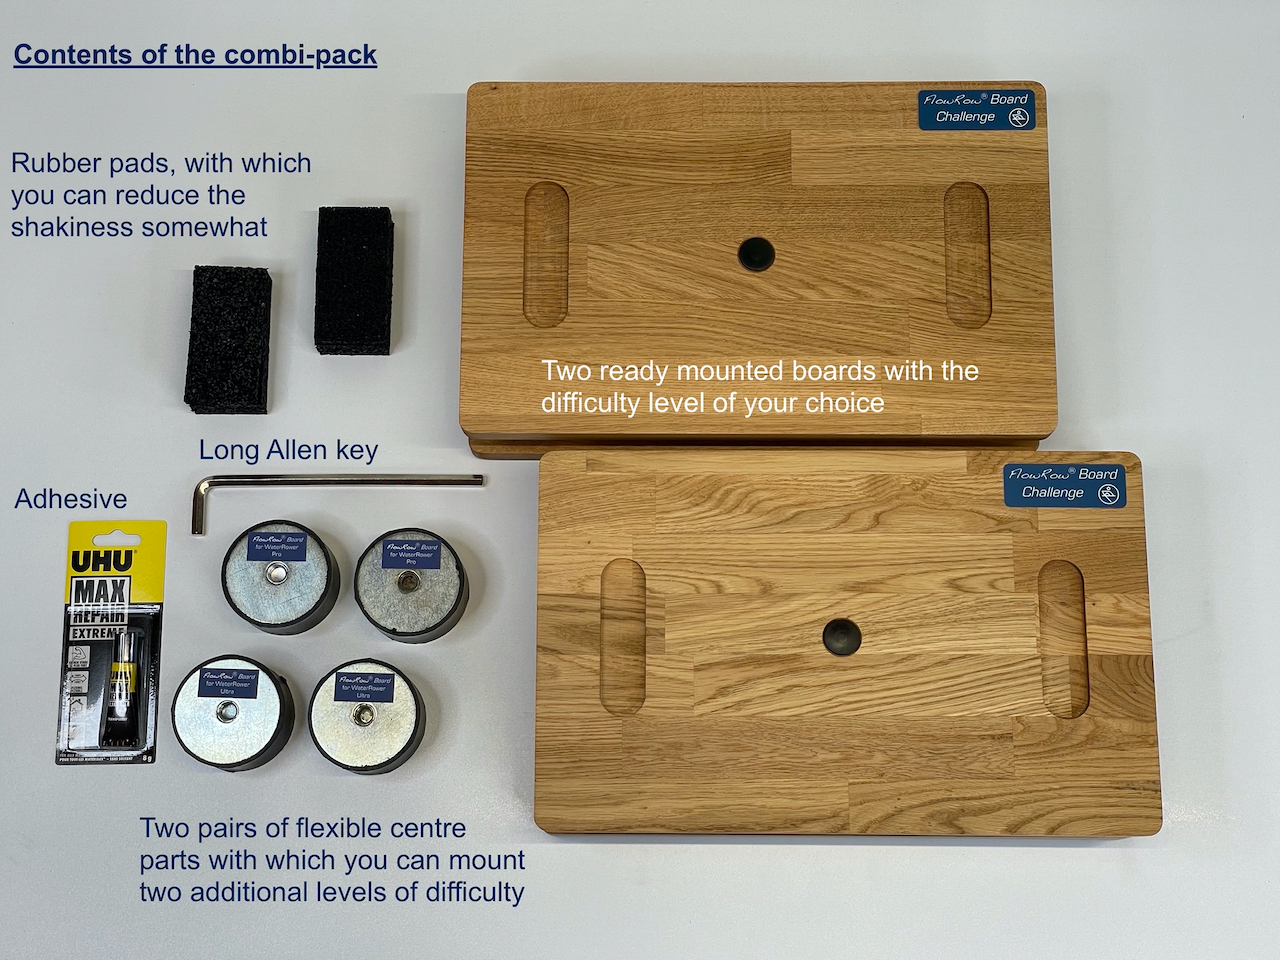 FlowRow Board for WaterRower with Double Replacement Kit